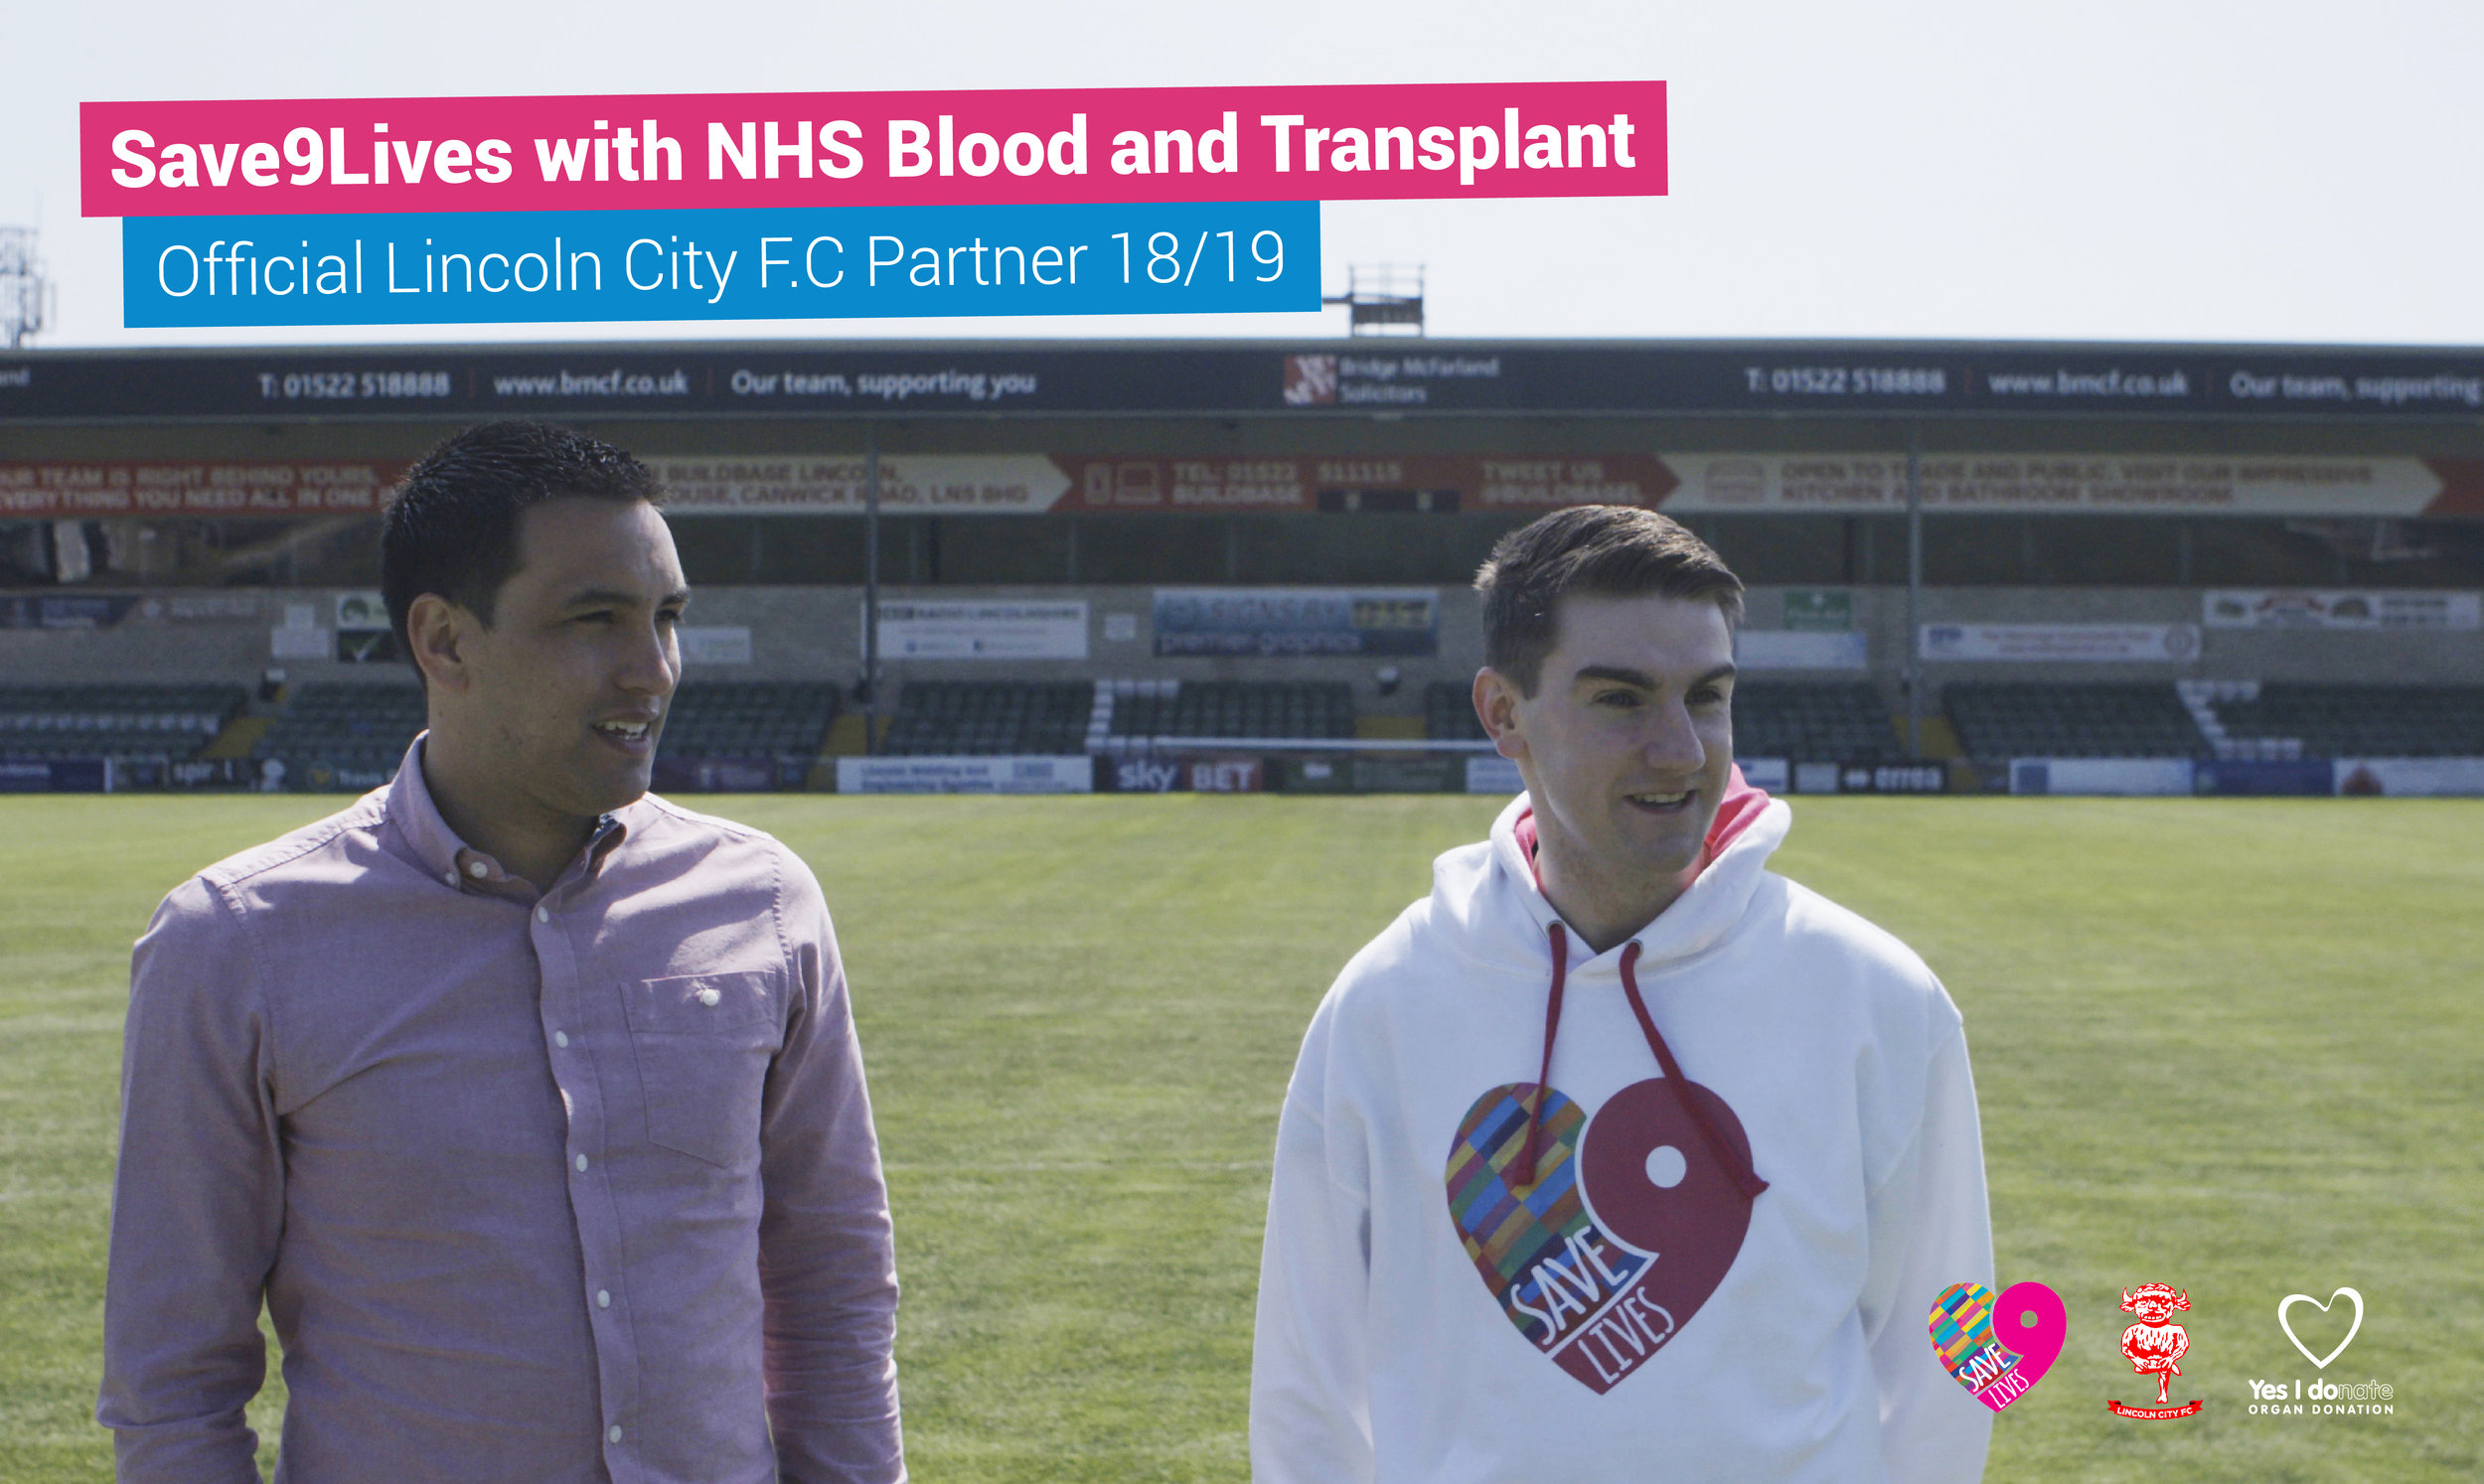 Jim Lynskey, Save9Lives Founder, with Imps' Chief Executive, Liam Scully.